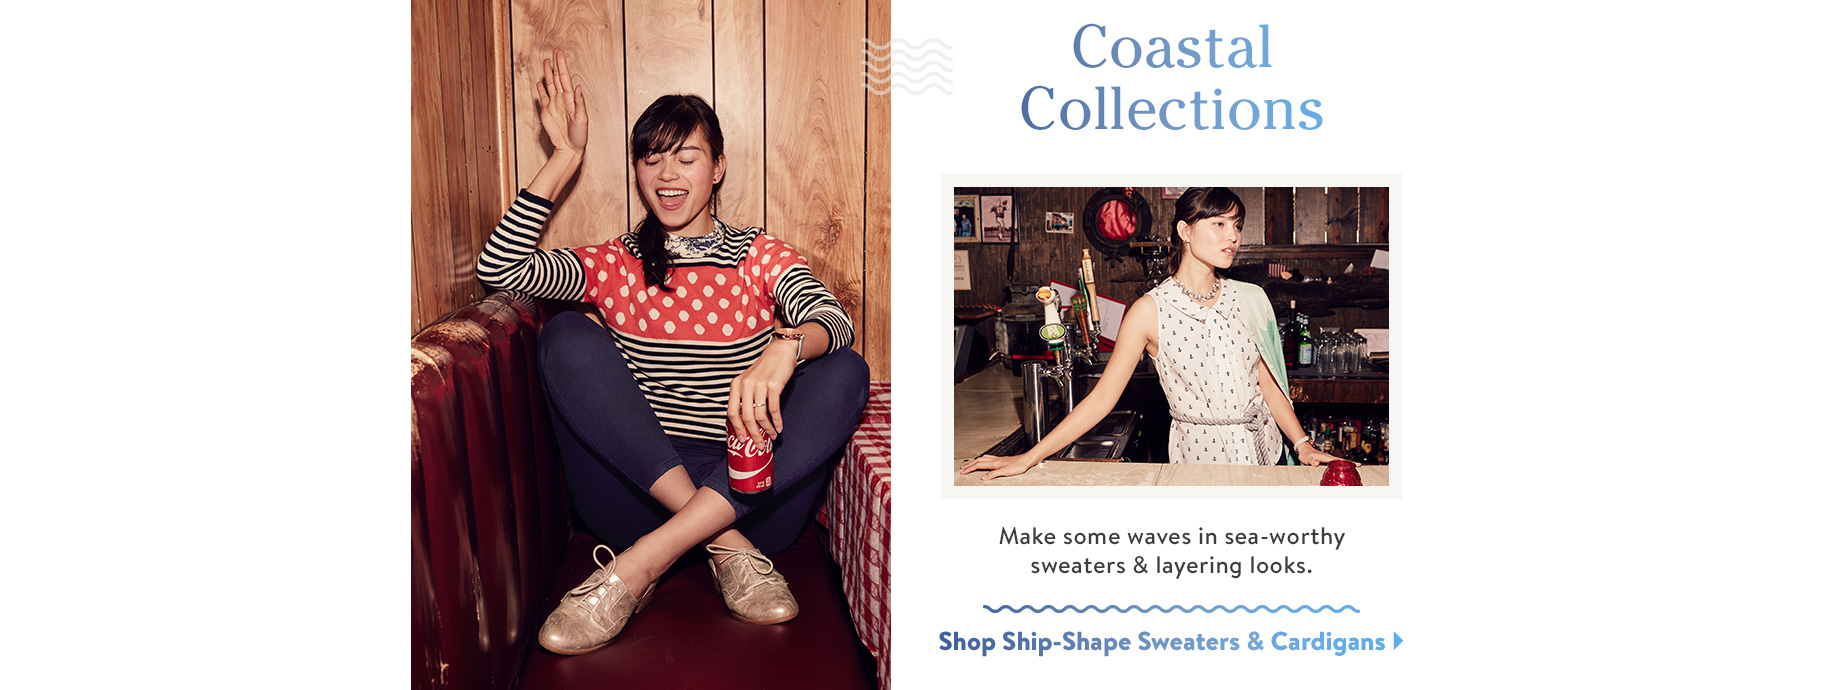 Coastal Collections. Make some waves in sea-worthy sweaters & layering looks. Shop Ship-Shape Sweaters Cardigans.